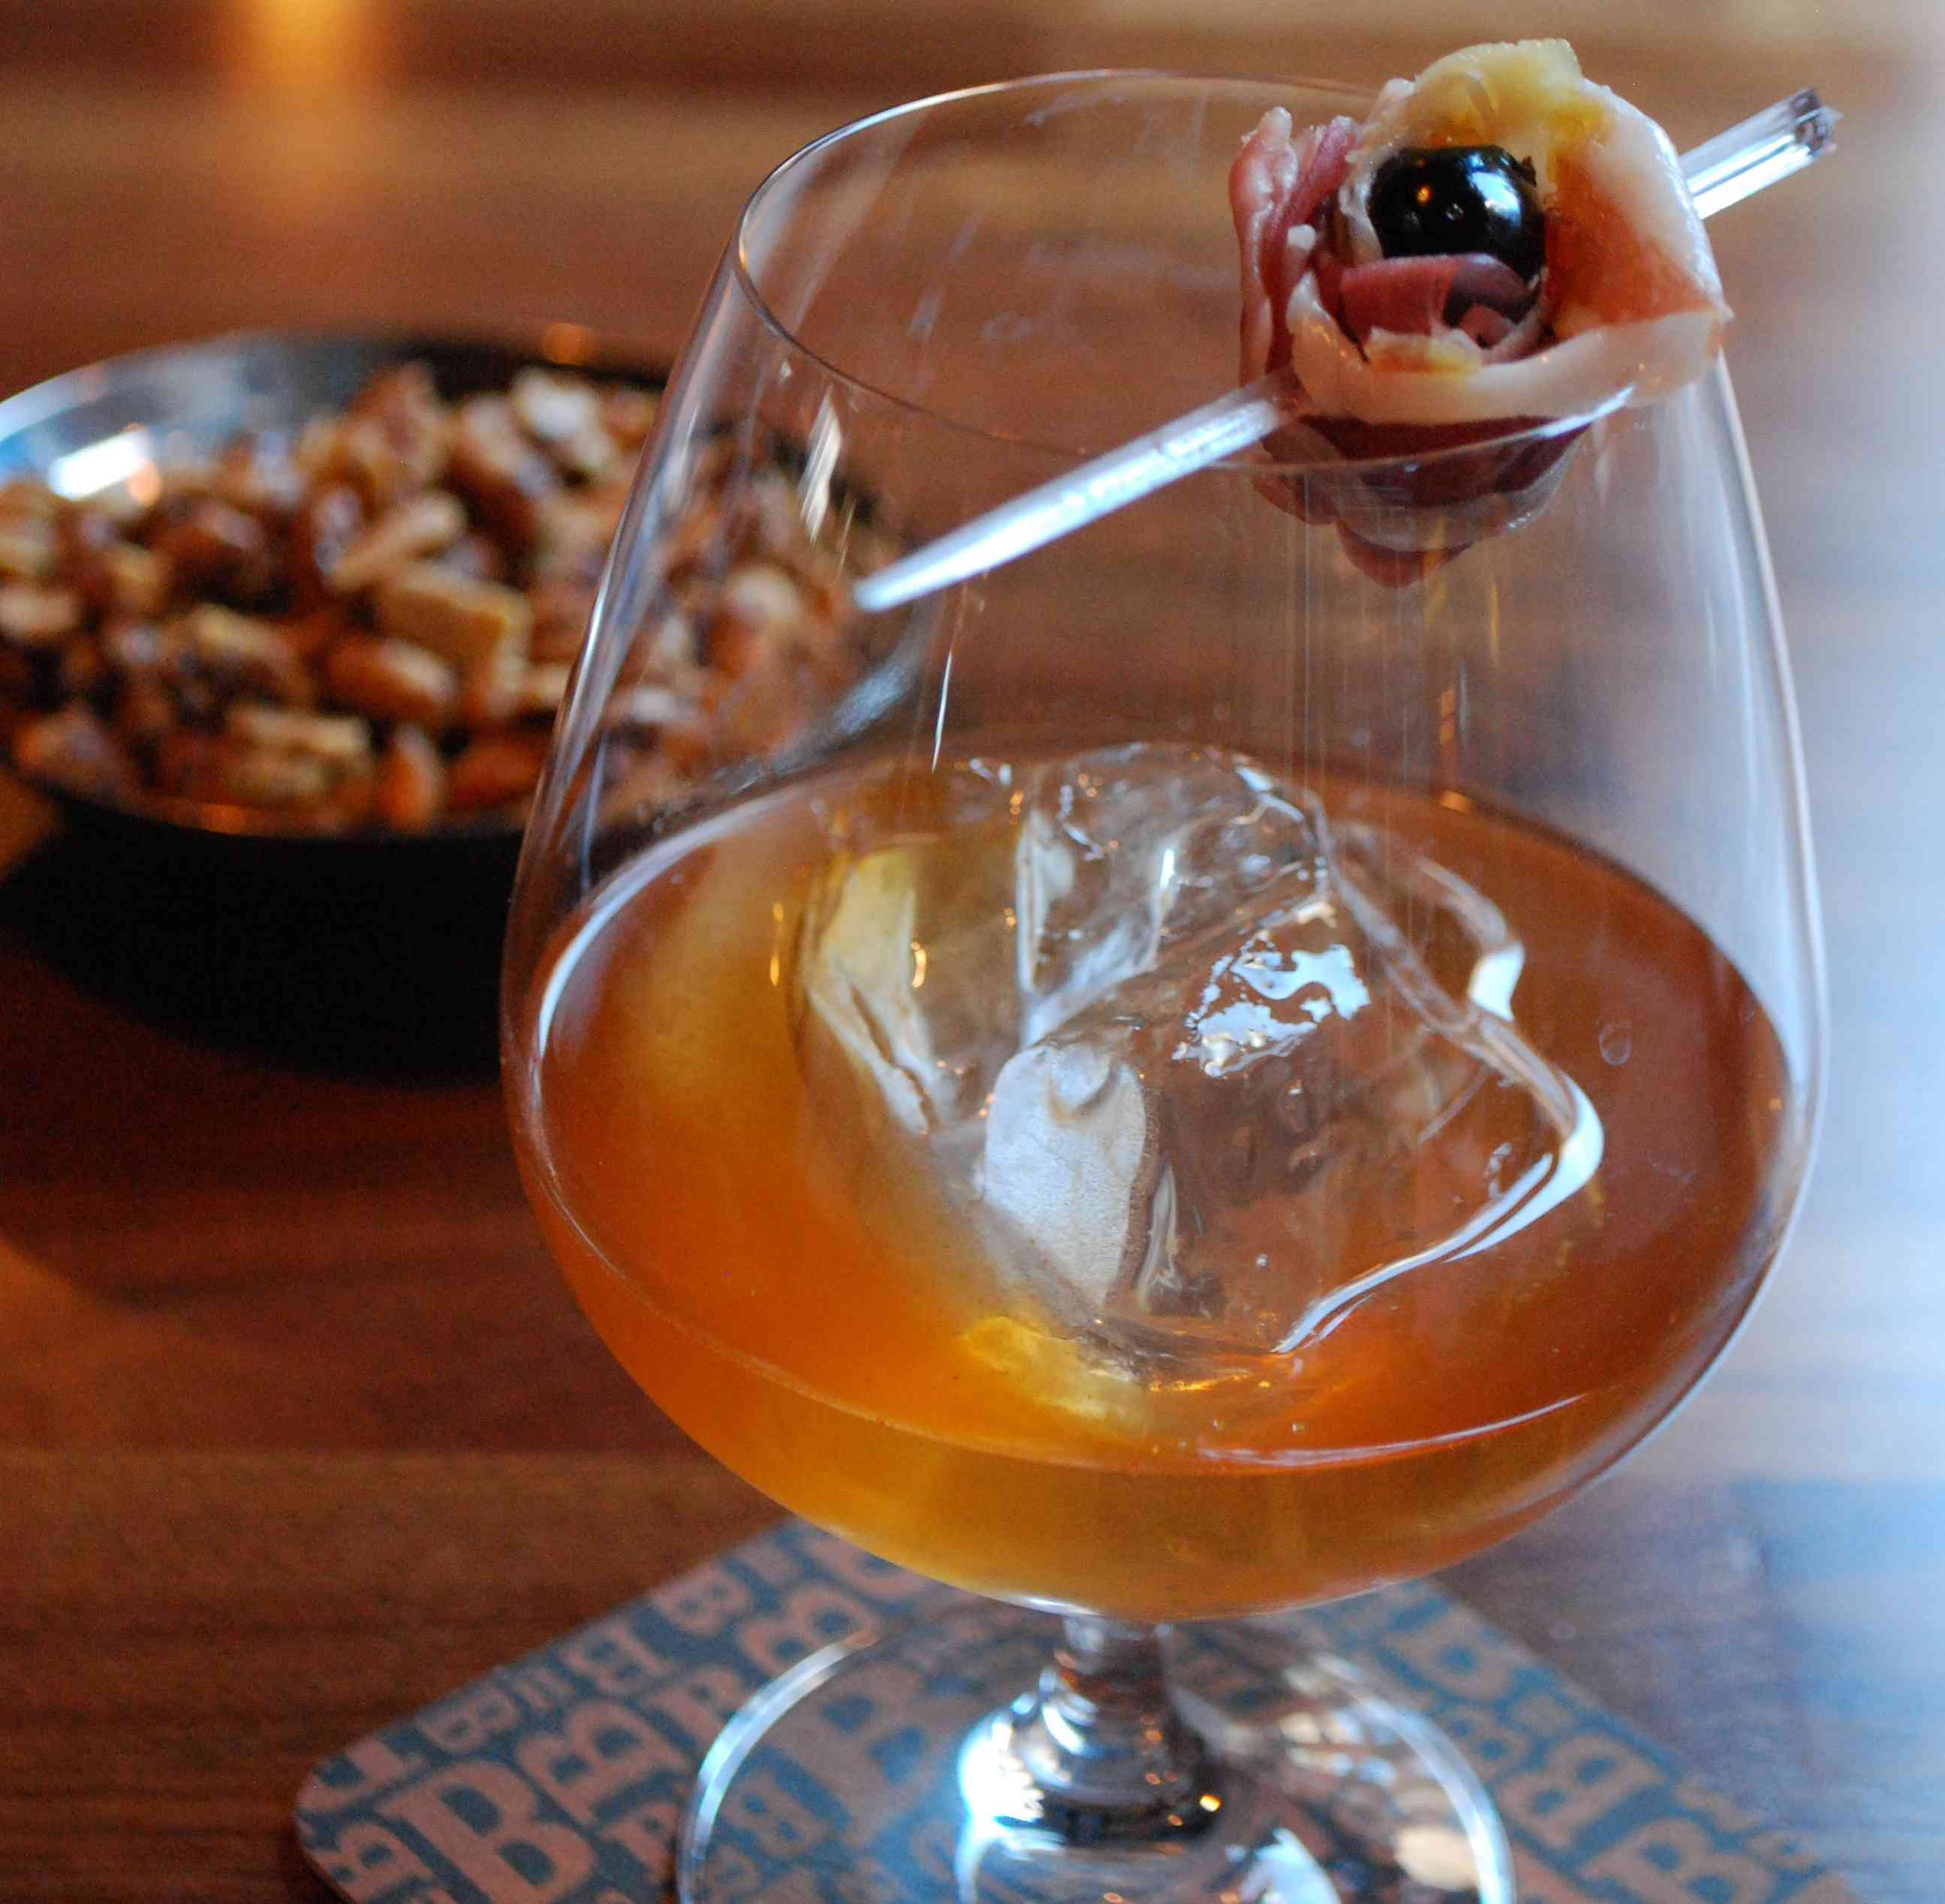 Bourbon Steak is offering a Bacon Blossom, bacon and cherry infused rye with cinnamon and Tobasco. (Photo: Bourbon Steak)